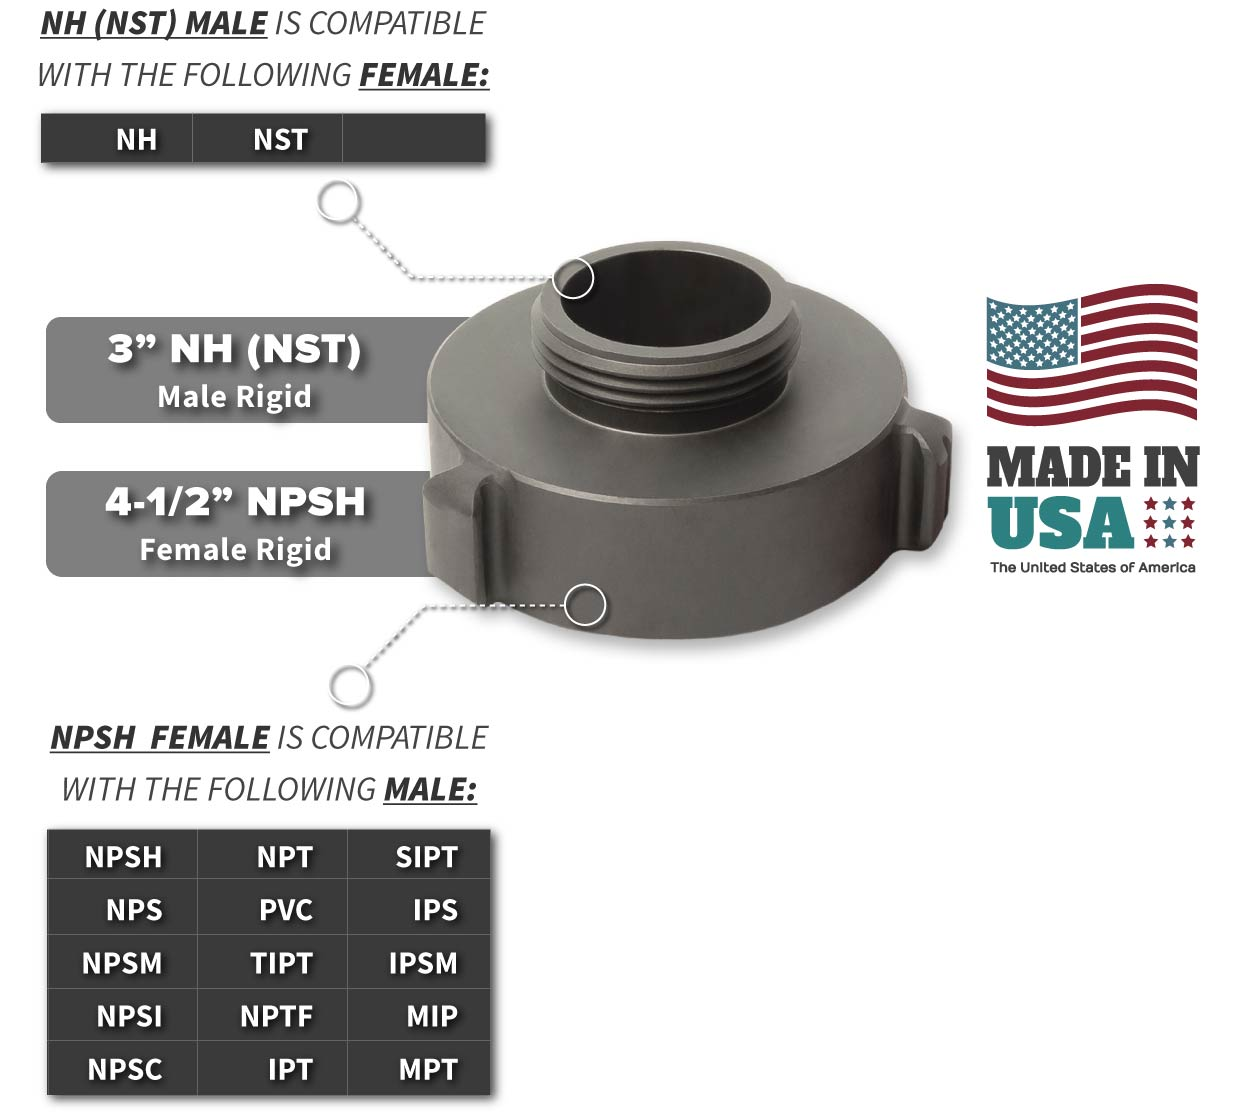 4.5 Inch NPSH Female x 3 Inch NH-NST Male Compatibility Thread Chart